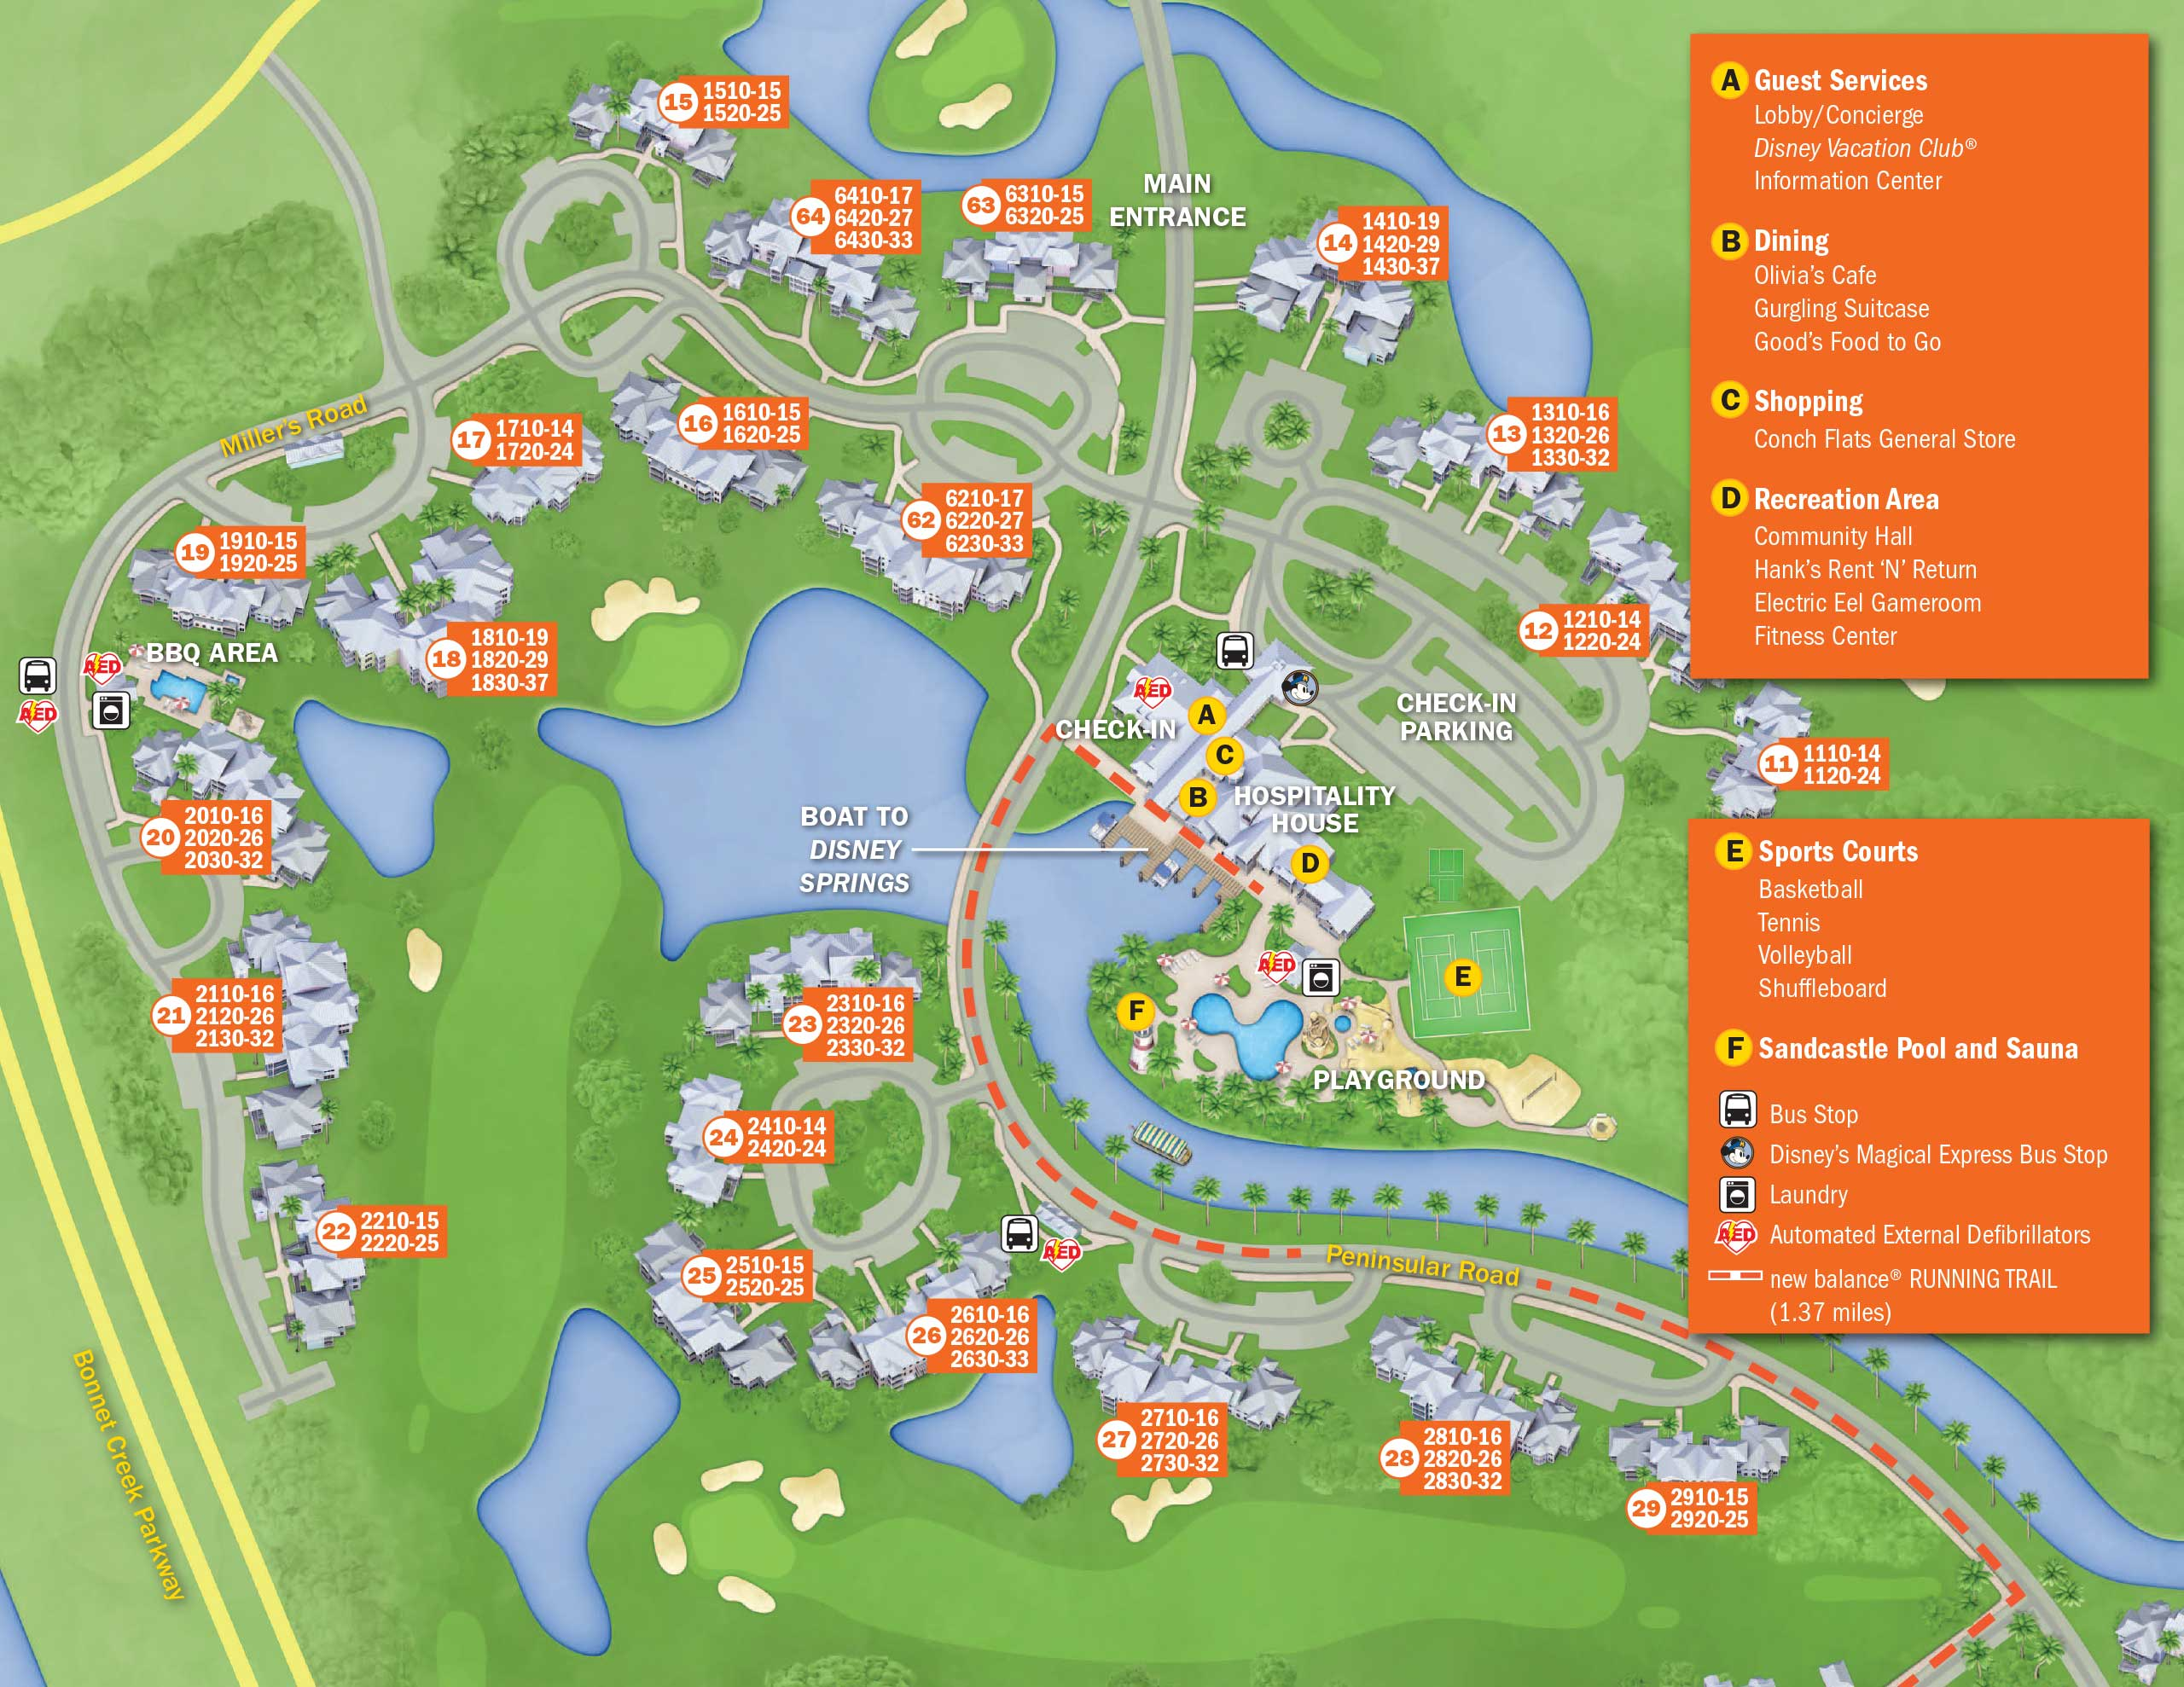 Walt Disney World Resort Map April 2017 Walt Disney World Resort Hotel Maps   Photo 27 of 33